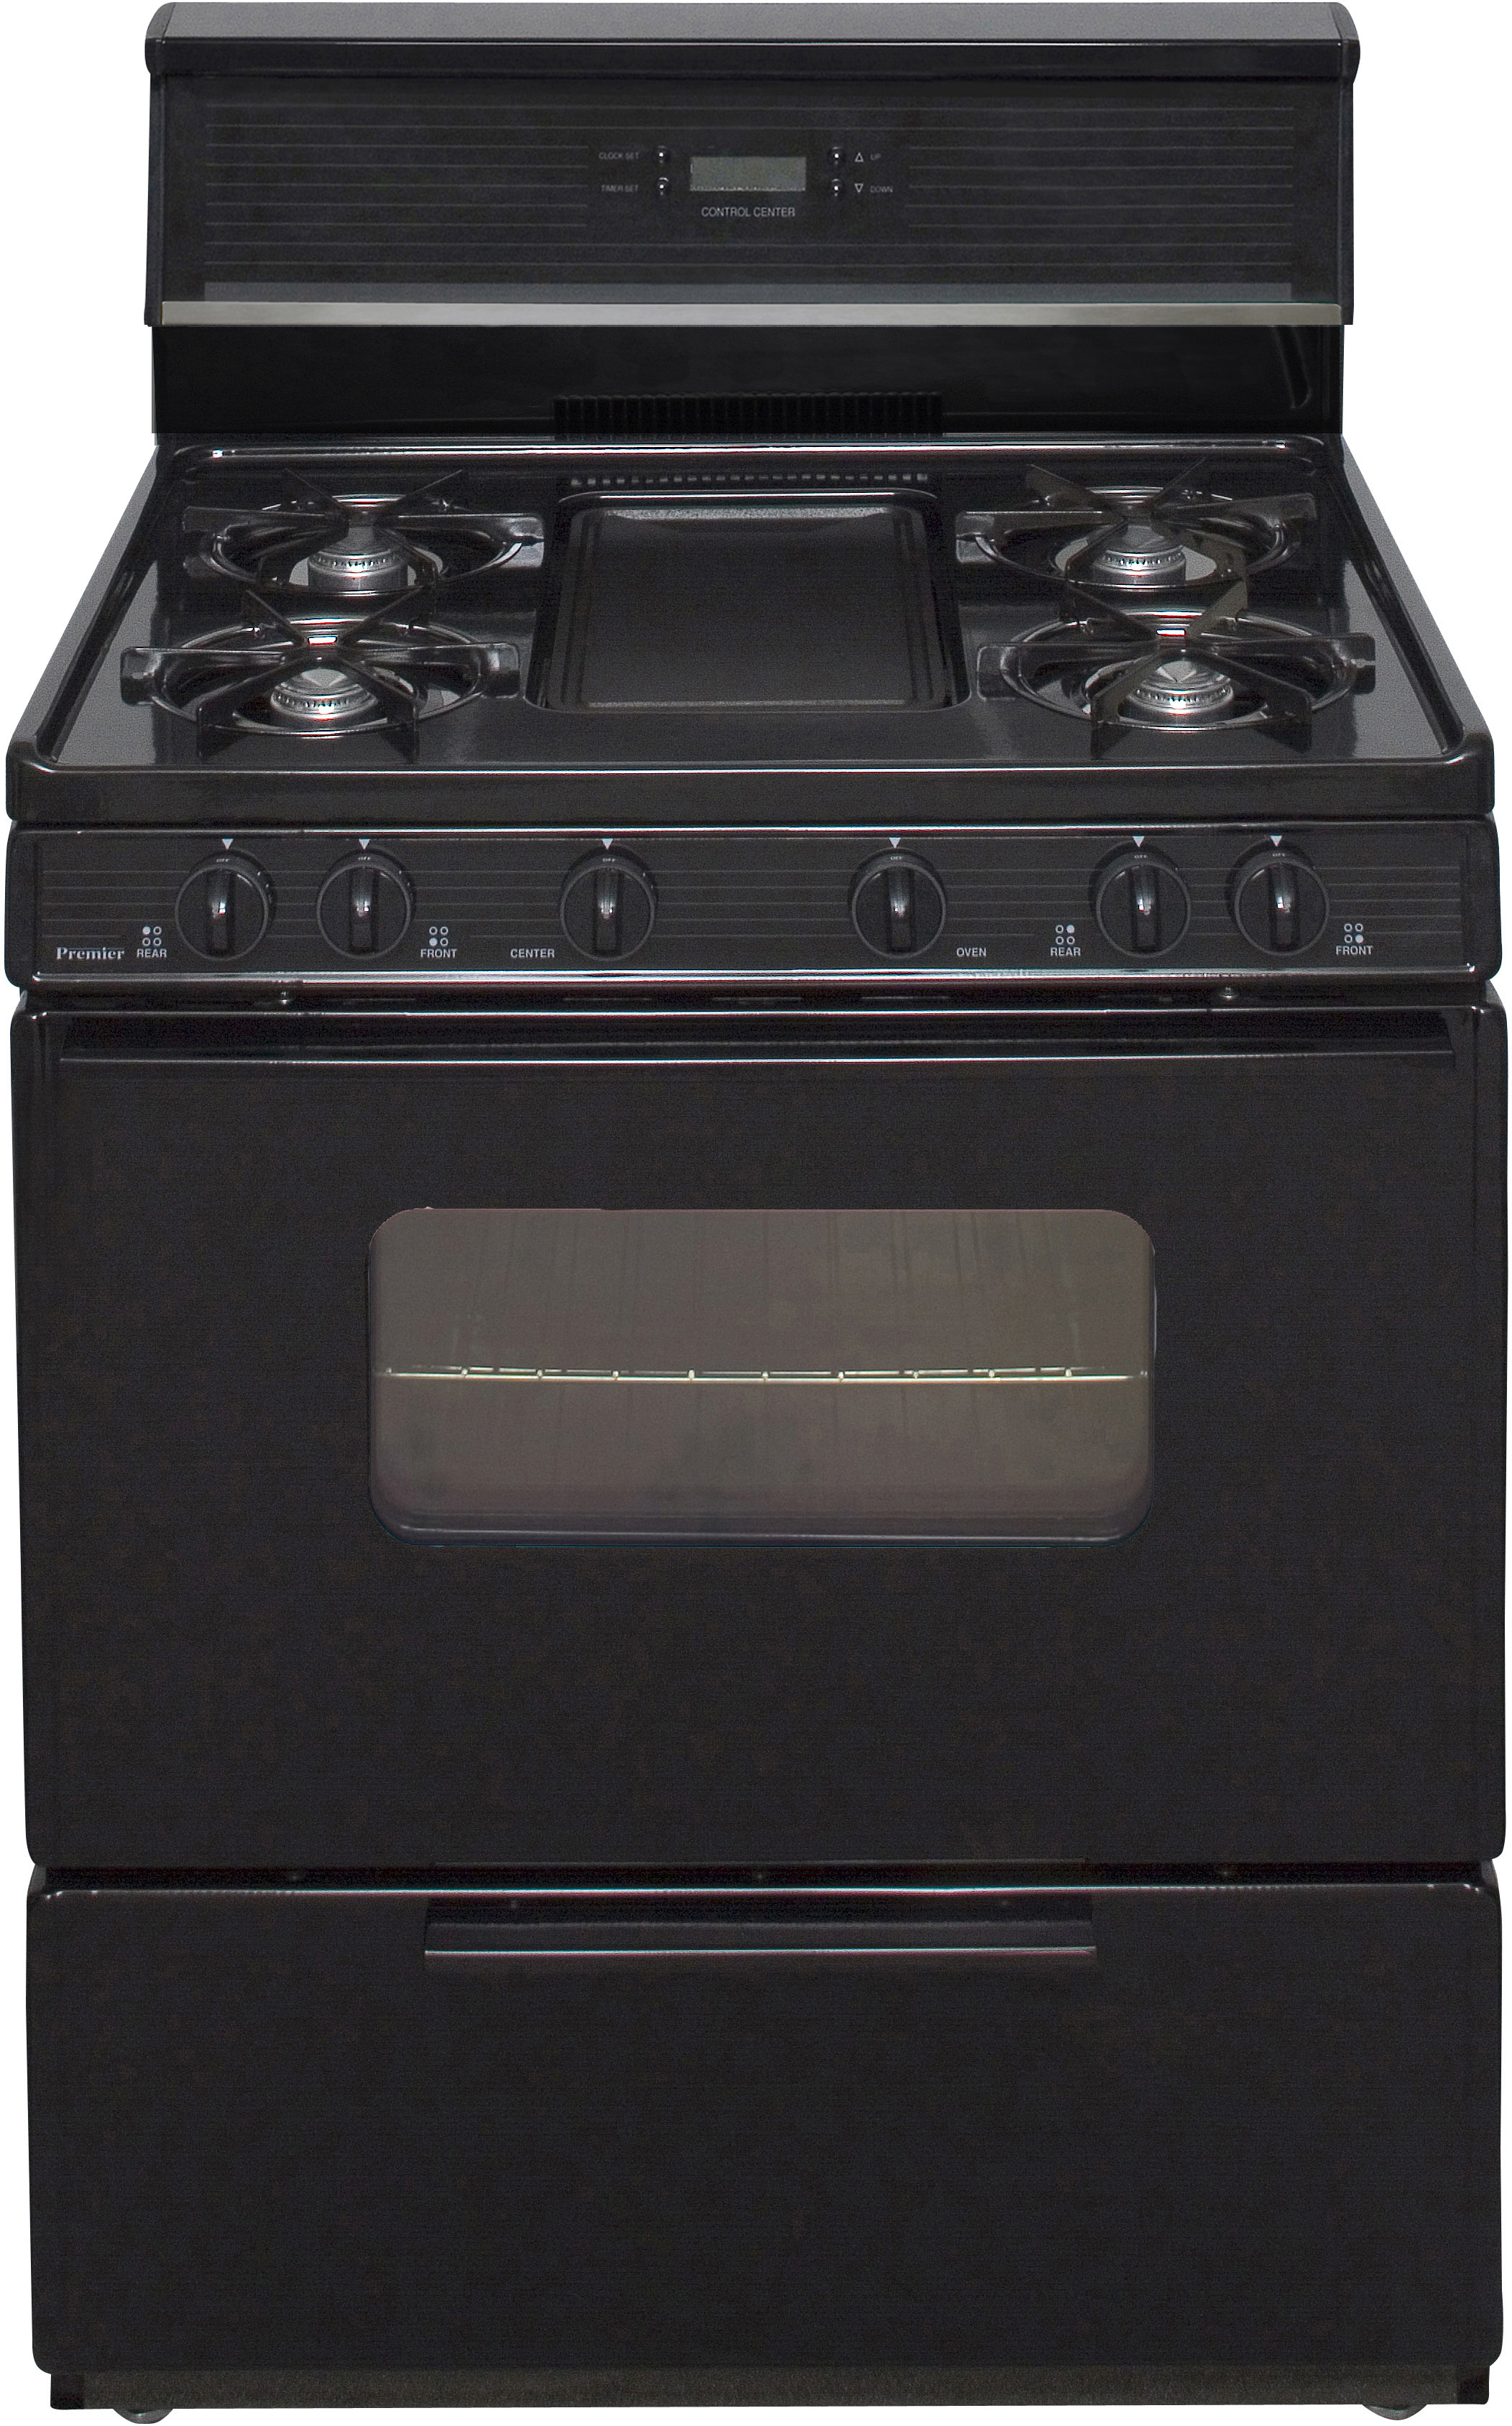 Premier Sfk249tp 30 Inch Freestanding Gas Range With 5